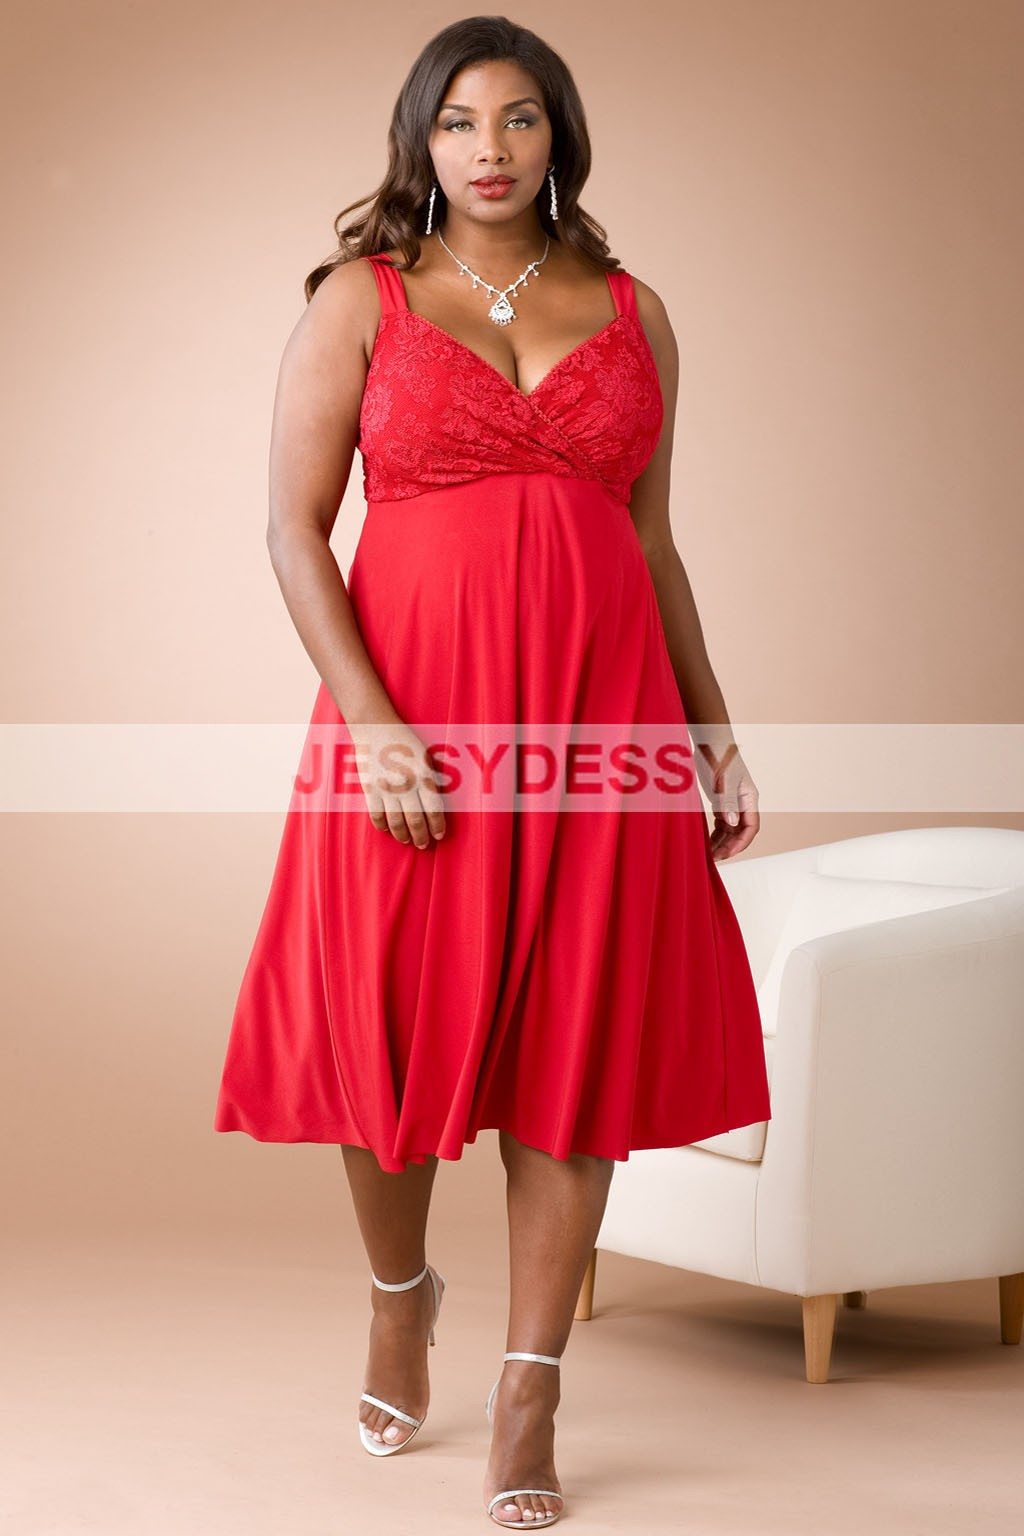 Plus size red dress uk 2014 2015 fashion trends 2016 2017 Plus size designer clothes uk